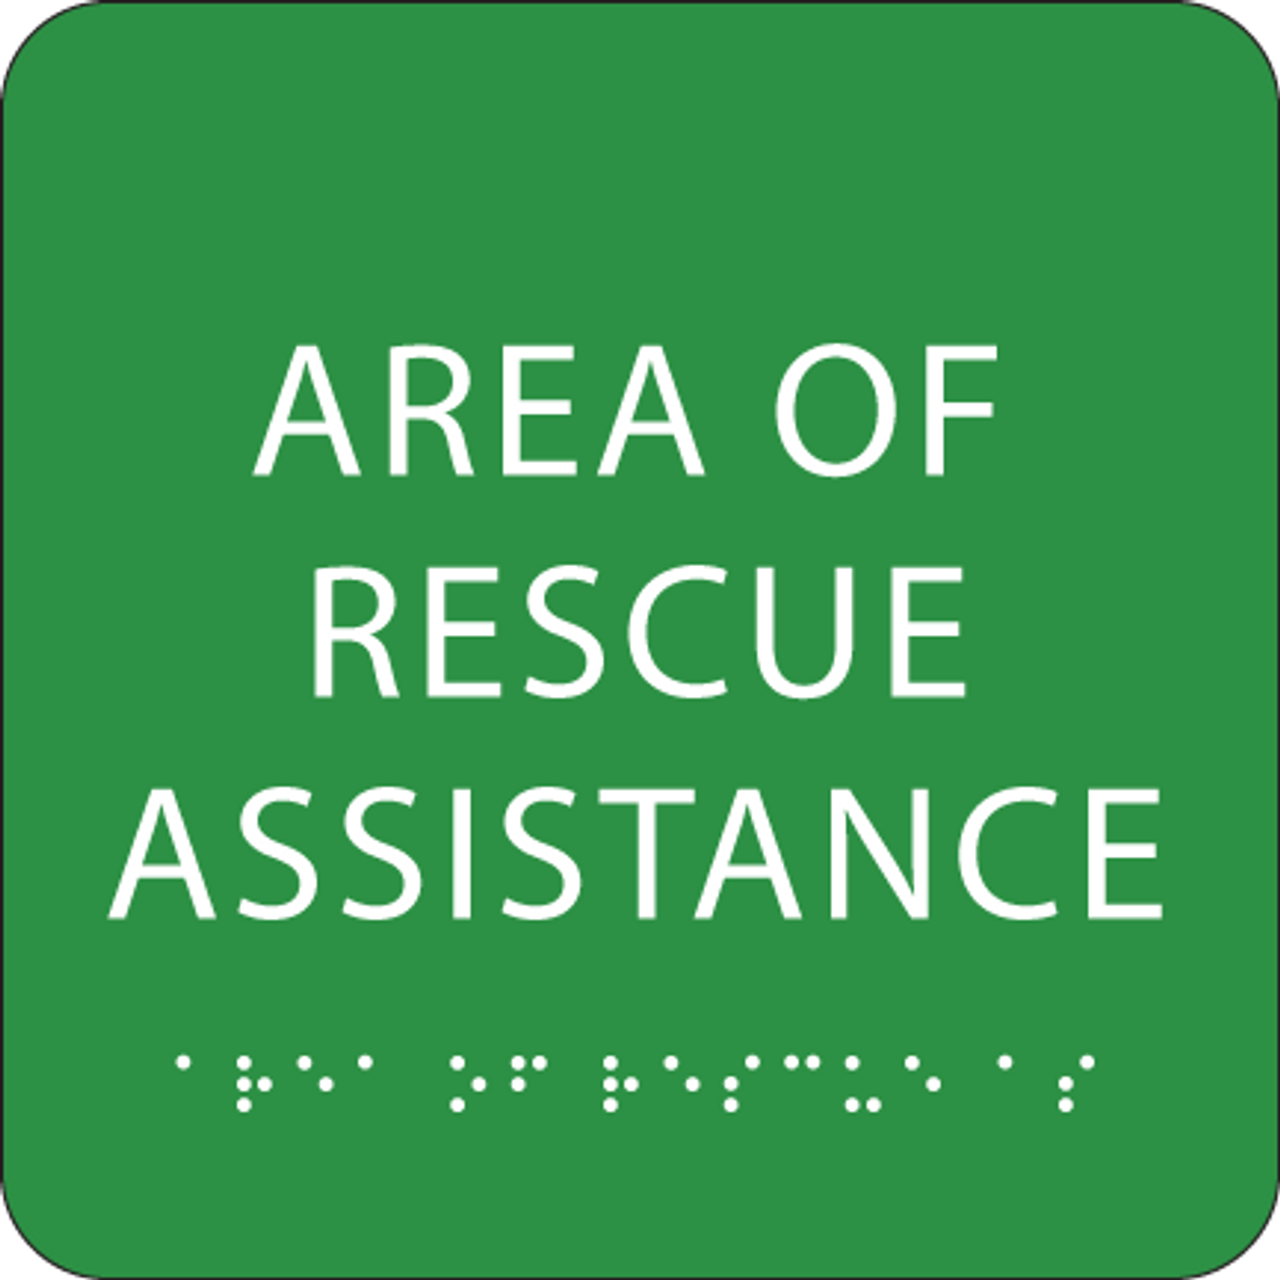 Green Area of Rescue Assistance Tactile Sign